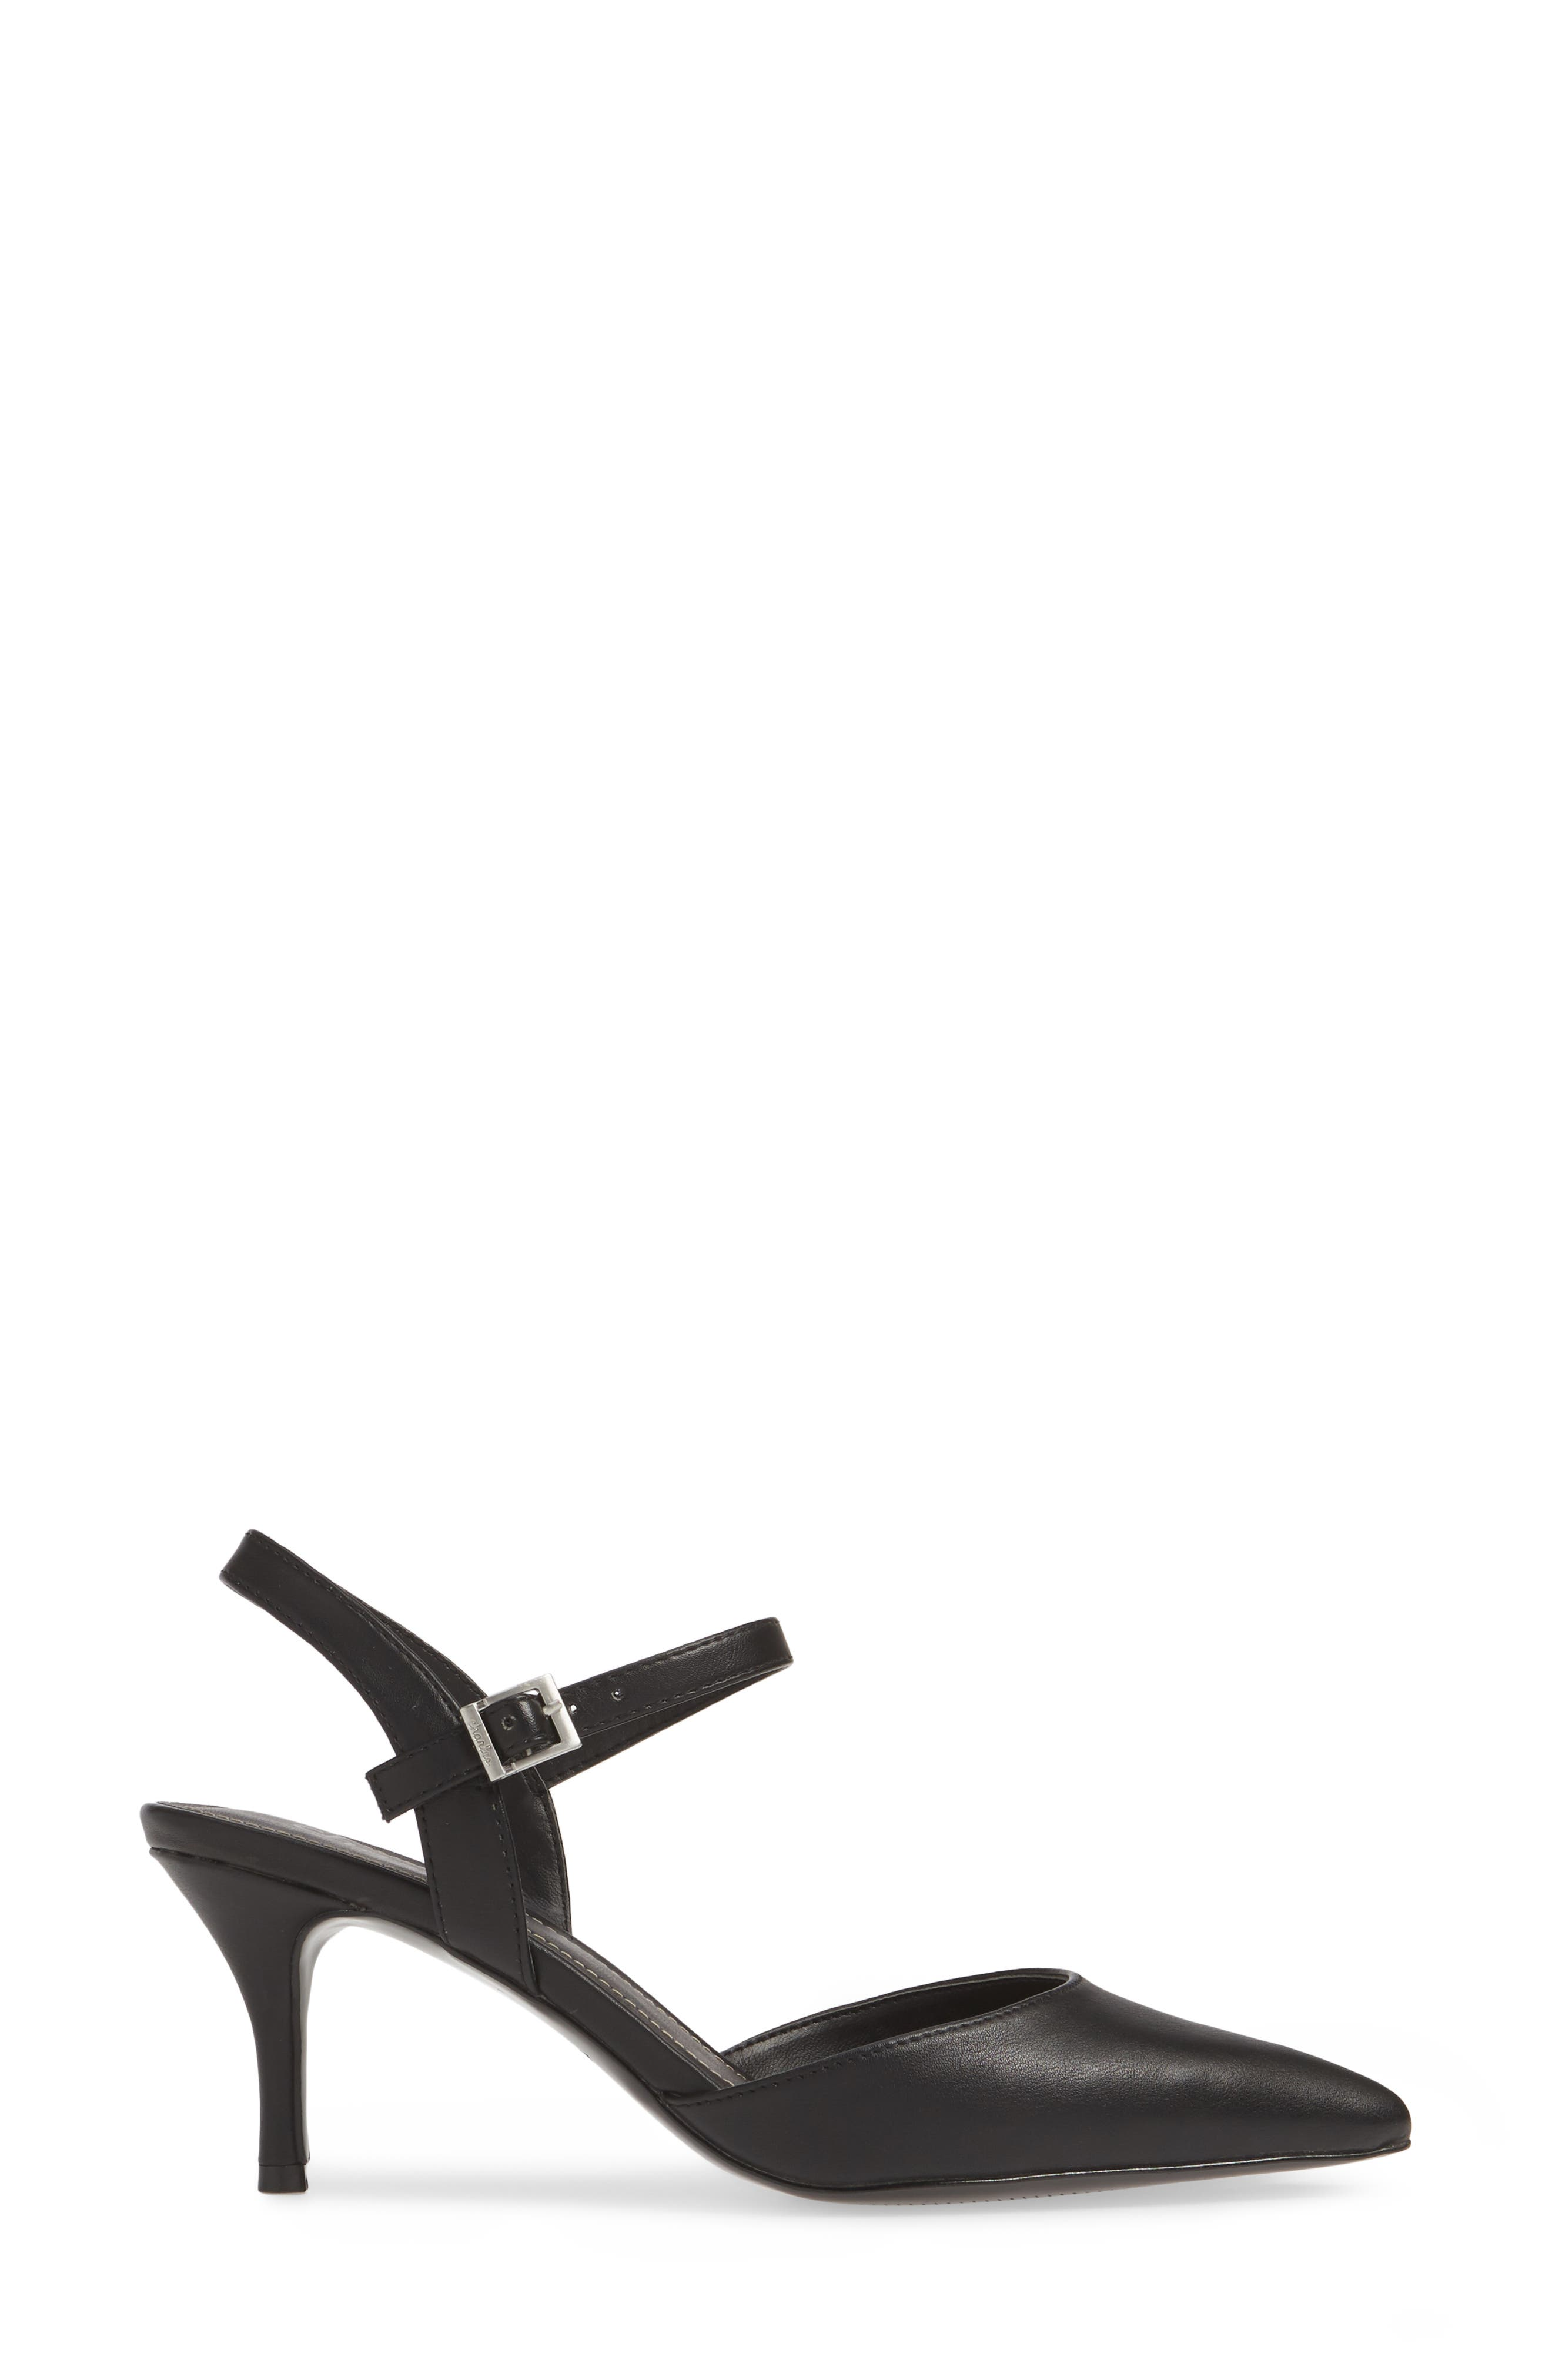 CHARLES BY CHARLES DAVID, Ankle Strap Pump, Alternate thumbnail 3, color, BLACK FAUX LEATHER